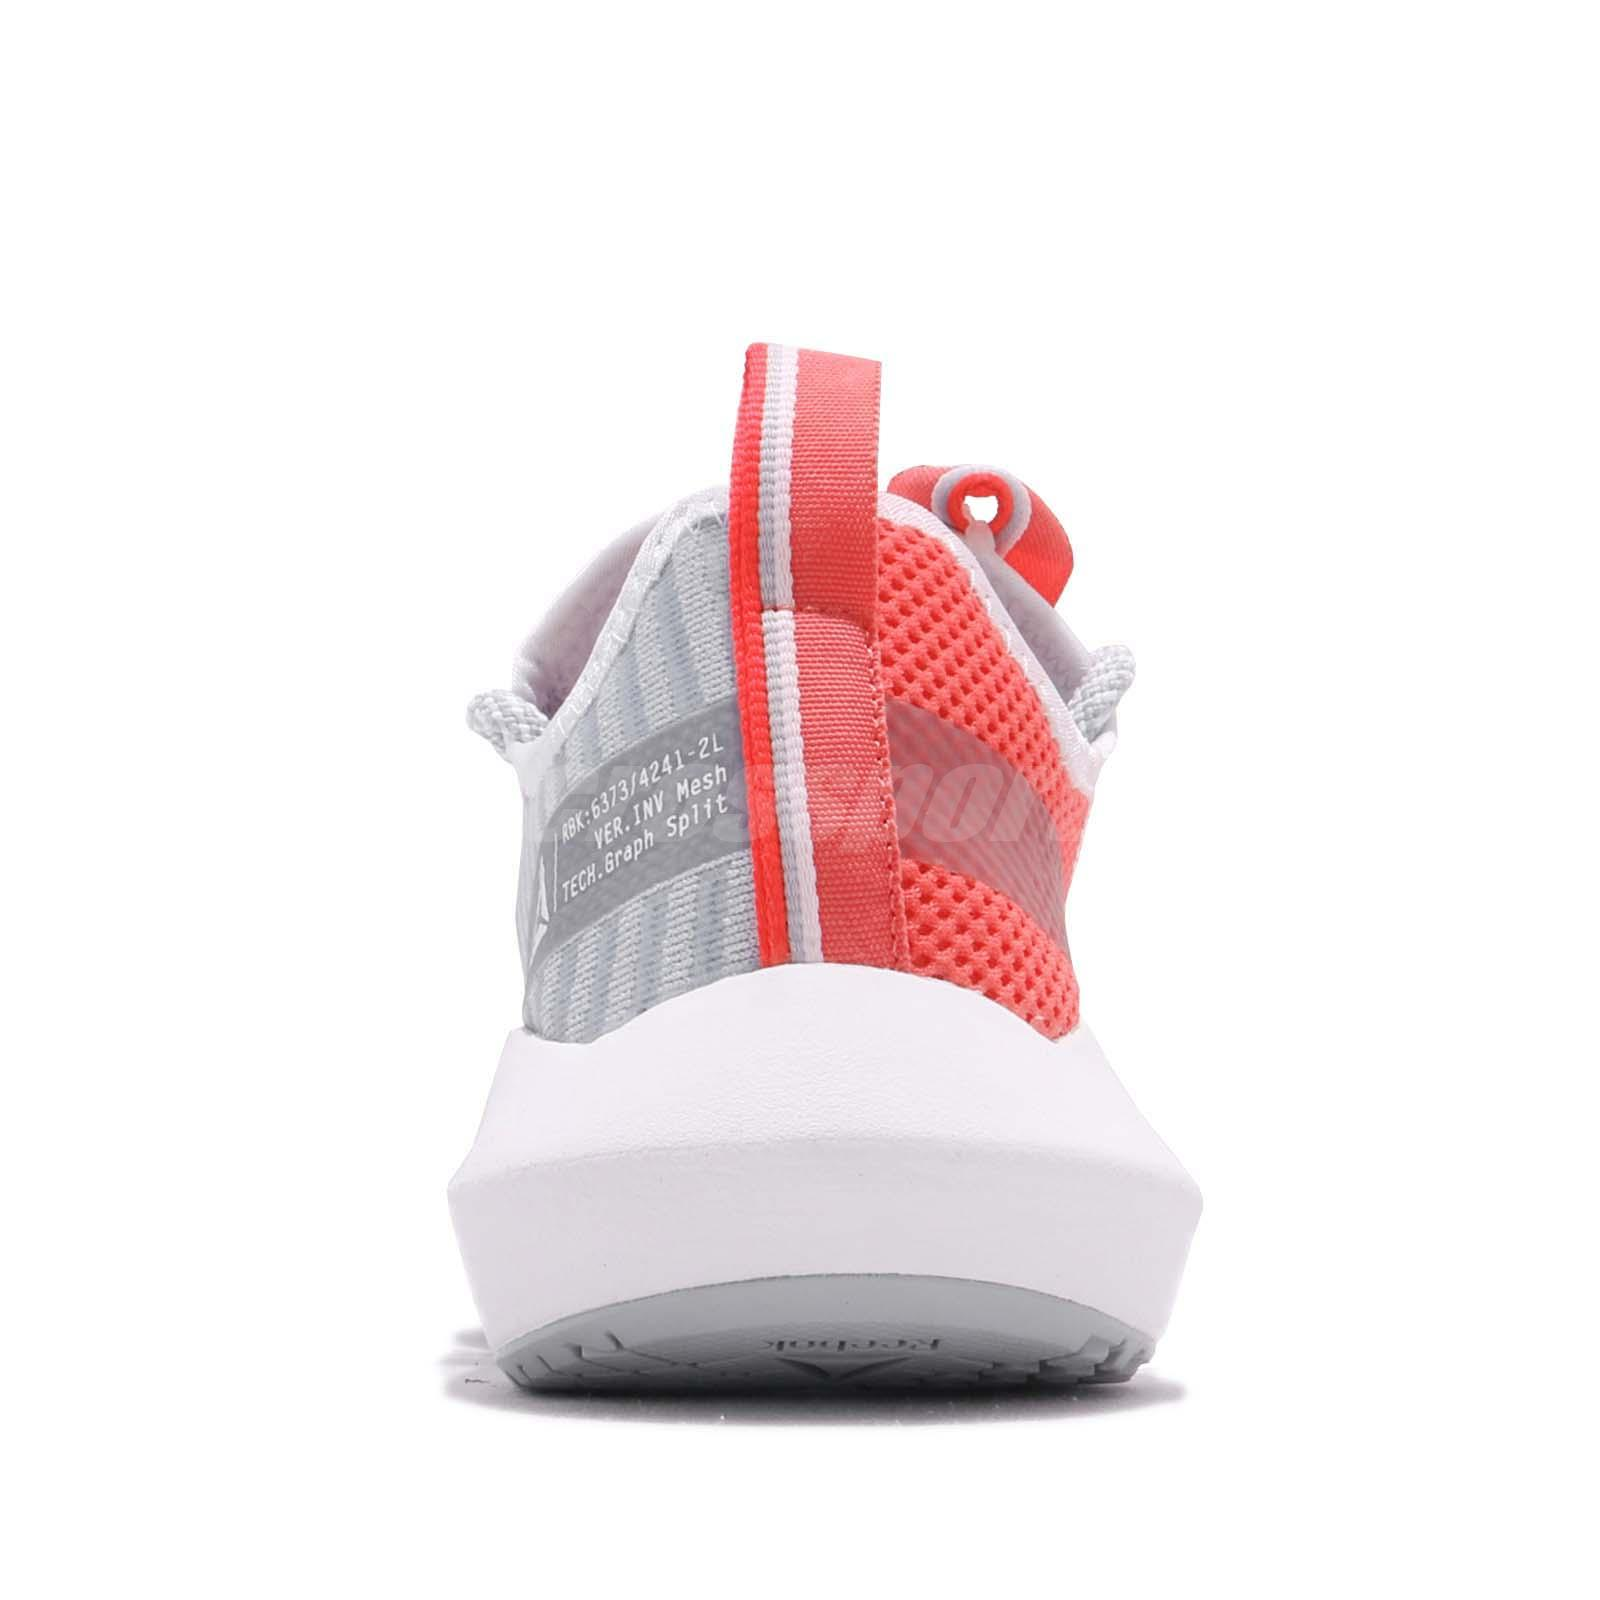 6a57c9d37d200e Reebok Sole Fury SE Grey Red White Women Running Lifestyle Shoes ...